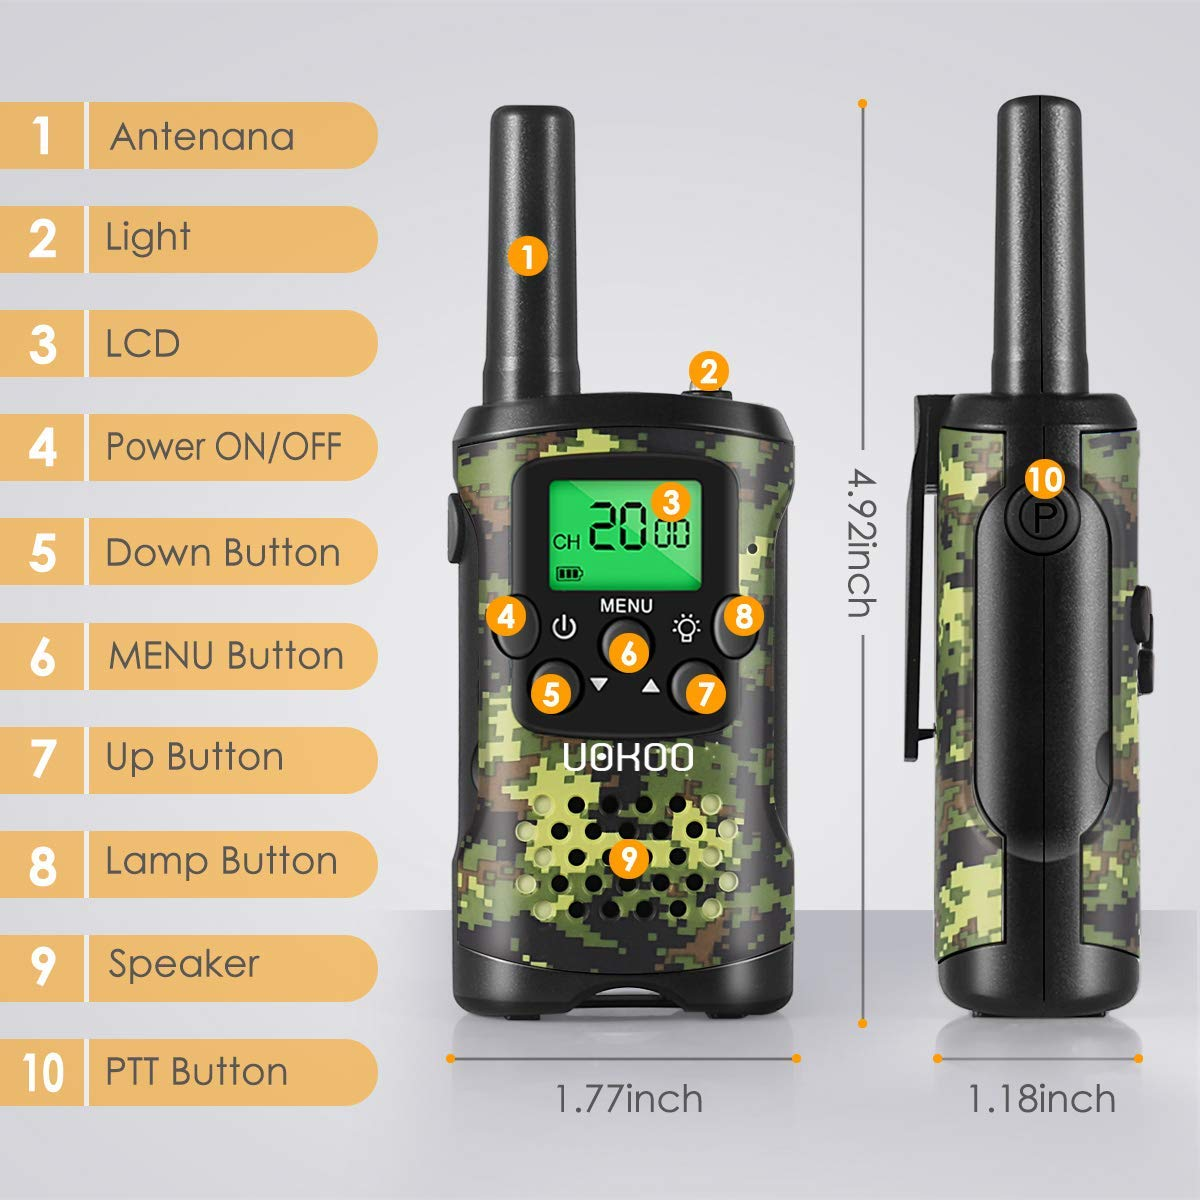 Walkie Talkies for Kids, Toys for 3-12 Year Old Boys 22 Channel 3 Mile Long Range Kids Toys and Kids Walkie Talkies, and Top Toys for for 3 4 5 6 7 8 9 Year Old Boy and Girls by UOKOO (Image #2)